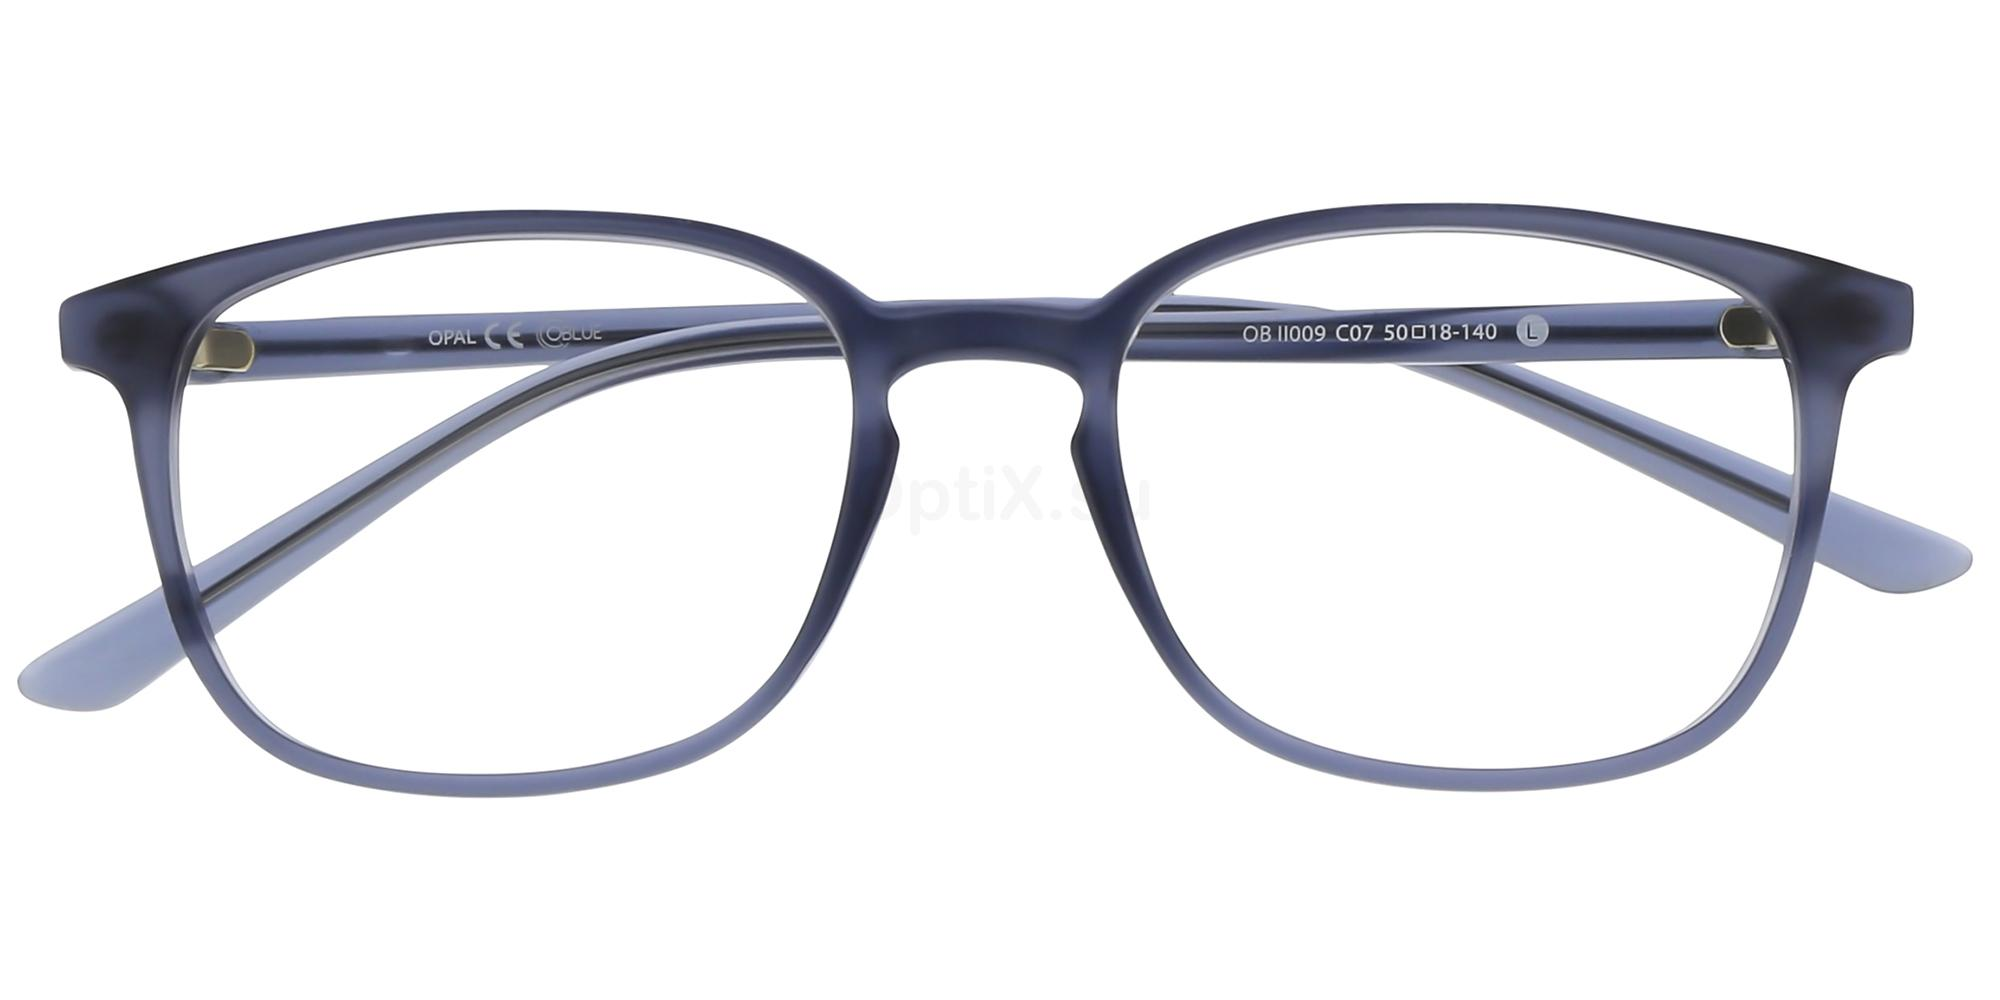 C07 OBII009L Glasses, Oblue